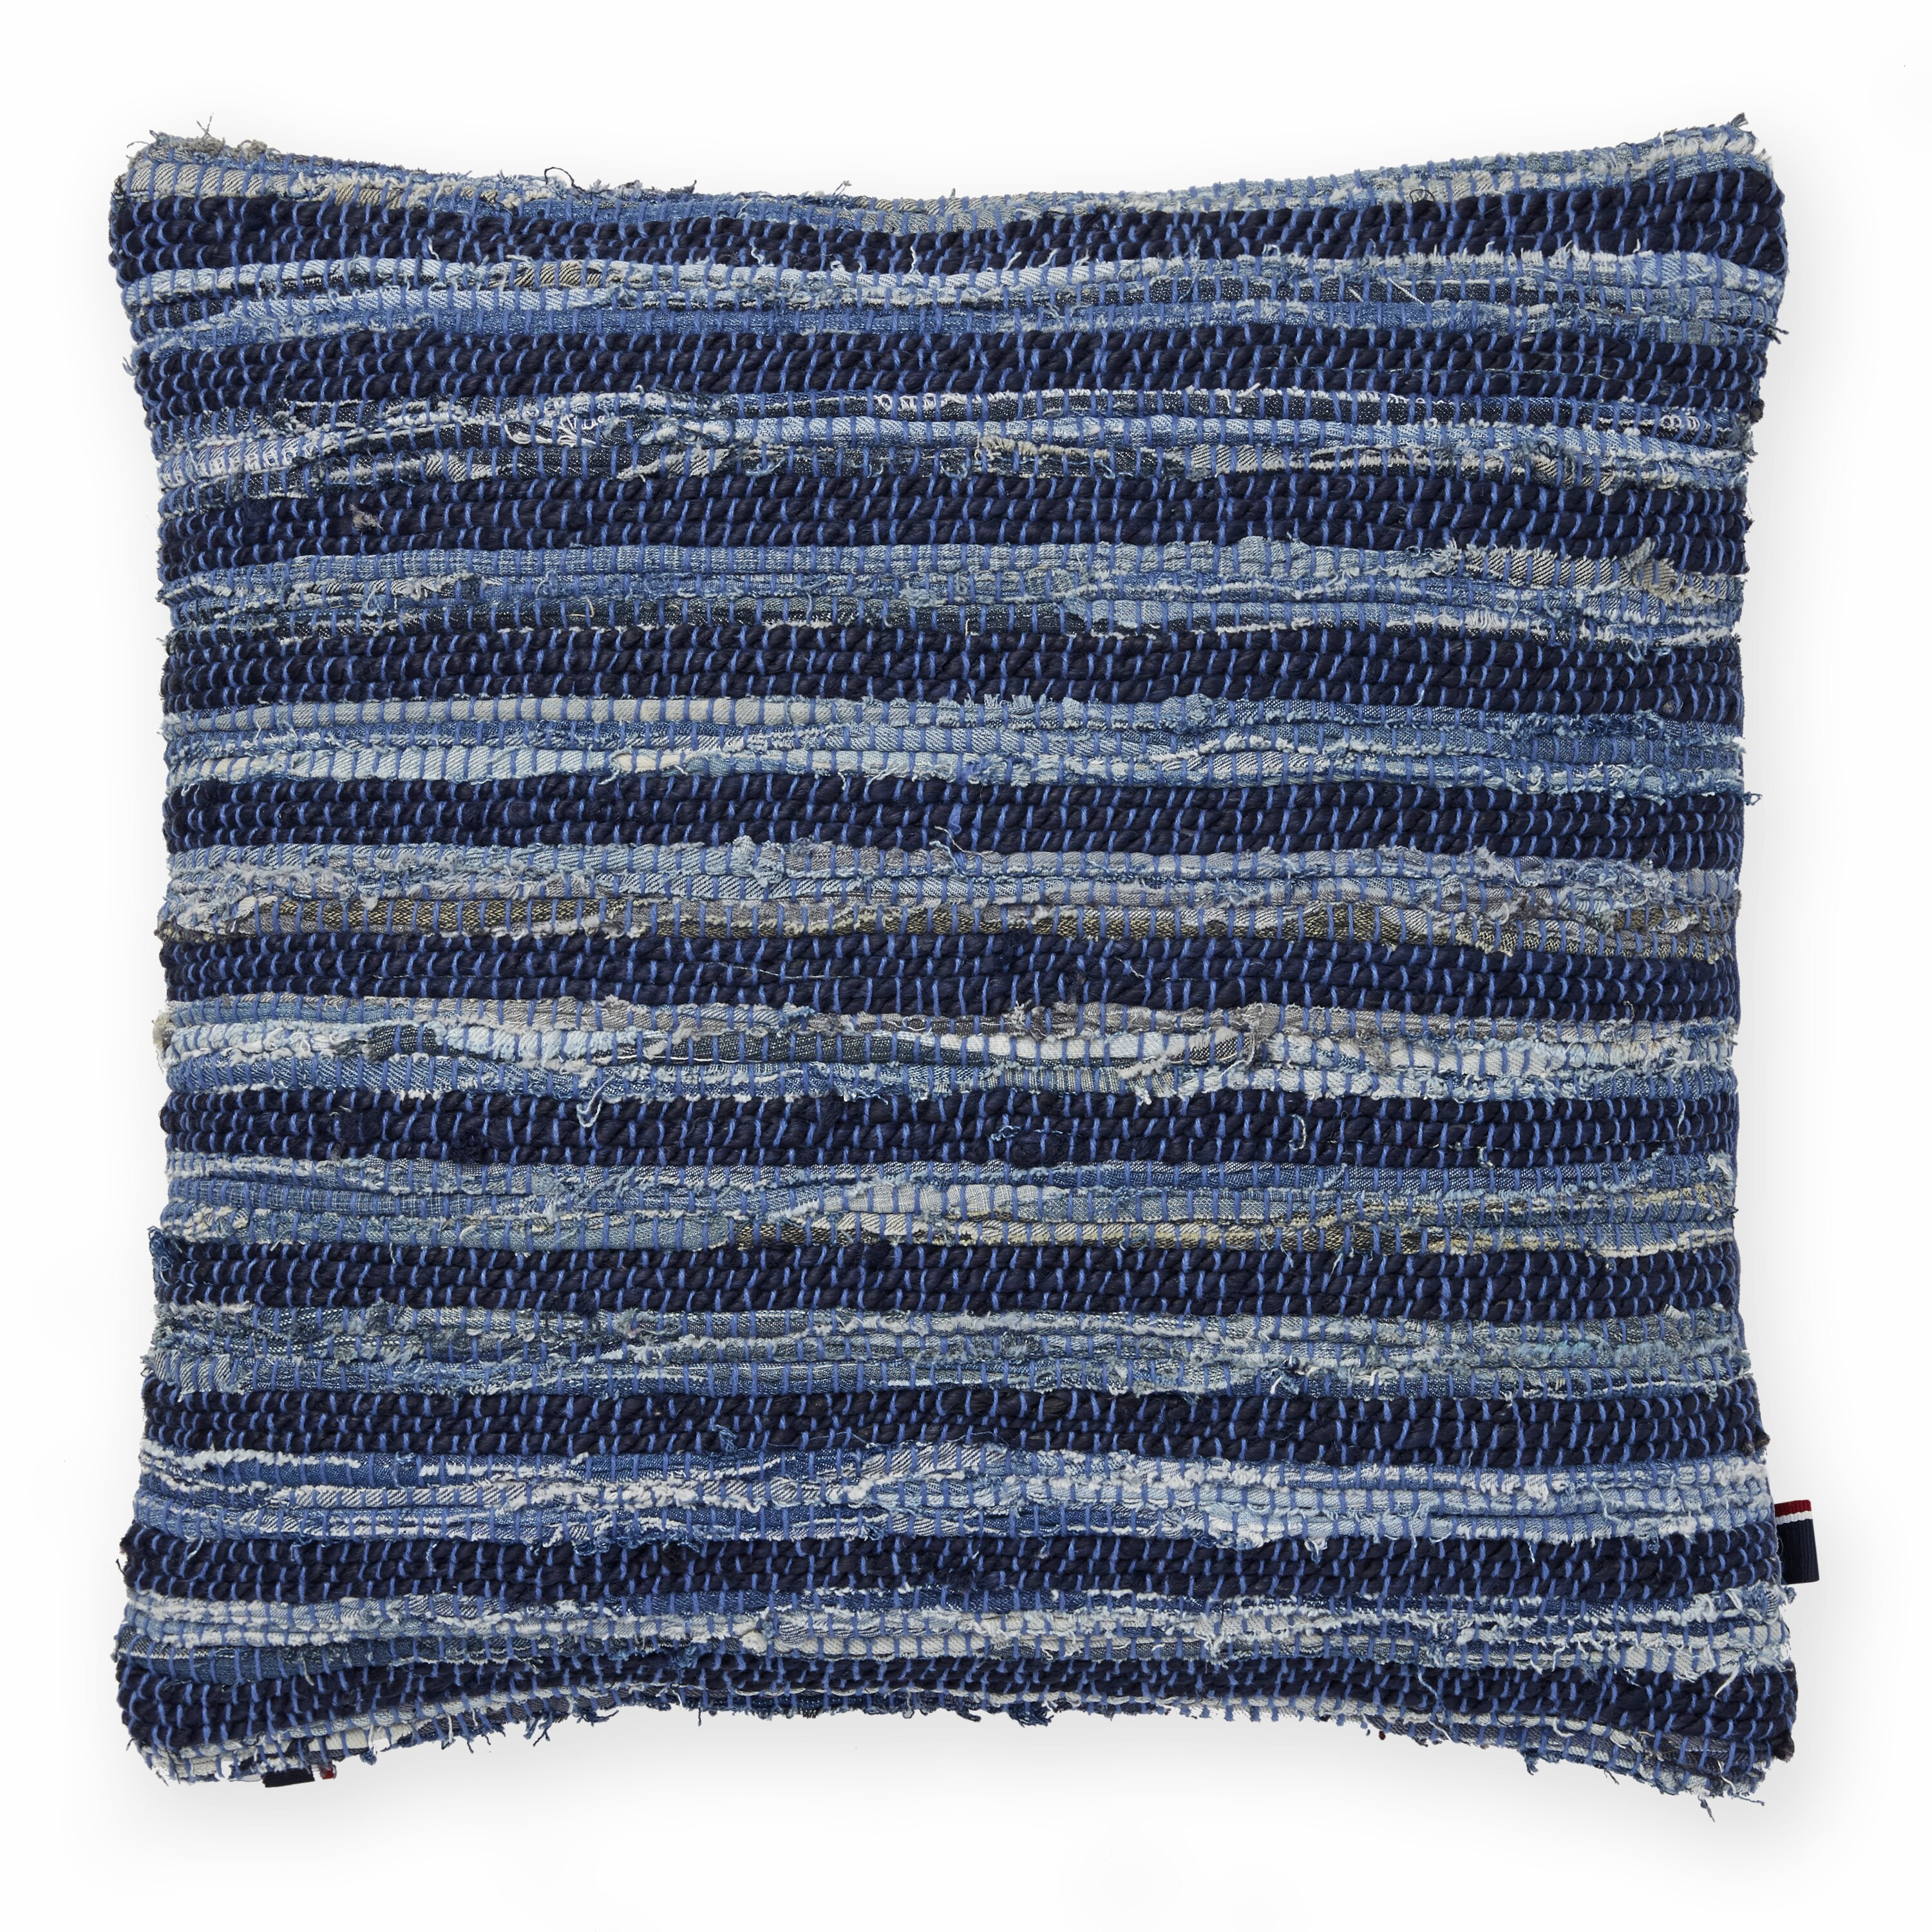 Tommy Hilfiger Decorative Bed Pillows : Tommy Hilfiger Rag Rug Decorative Throw Pillow & Reviews Wayfair